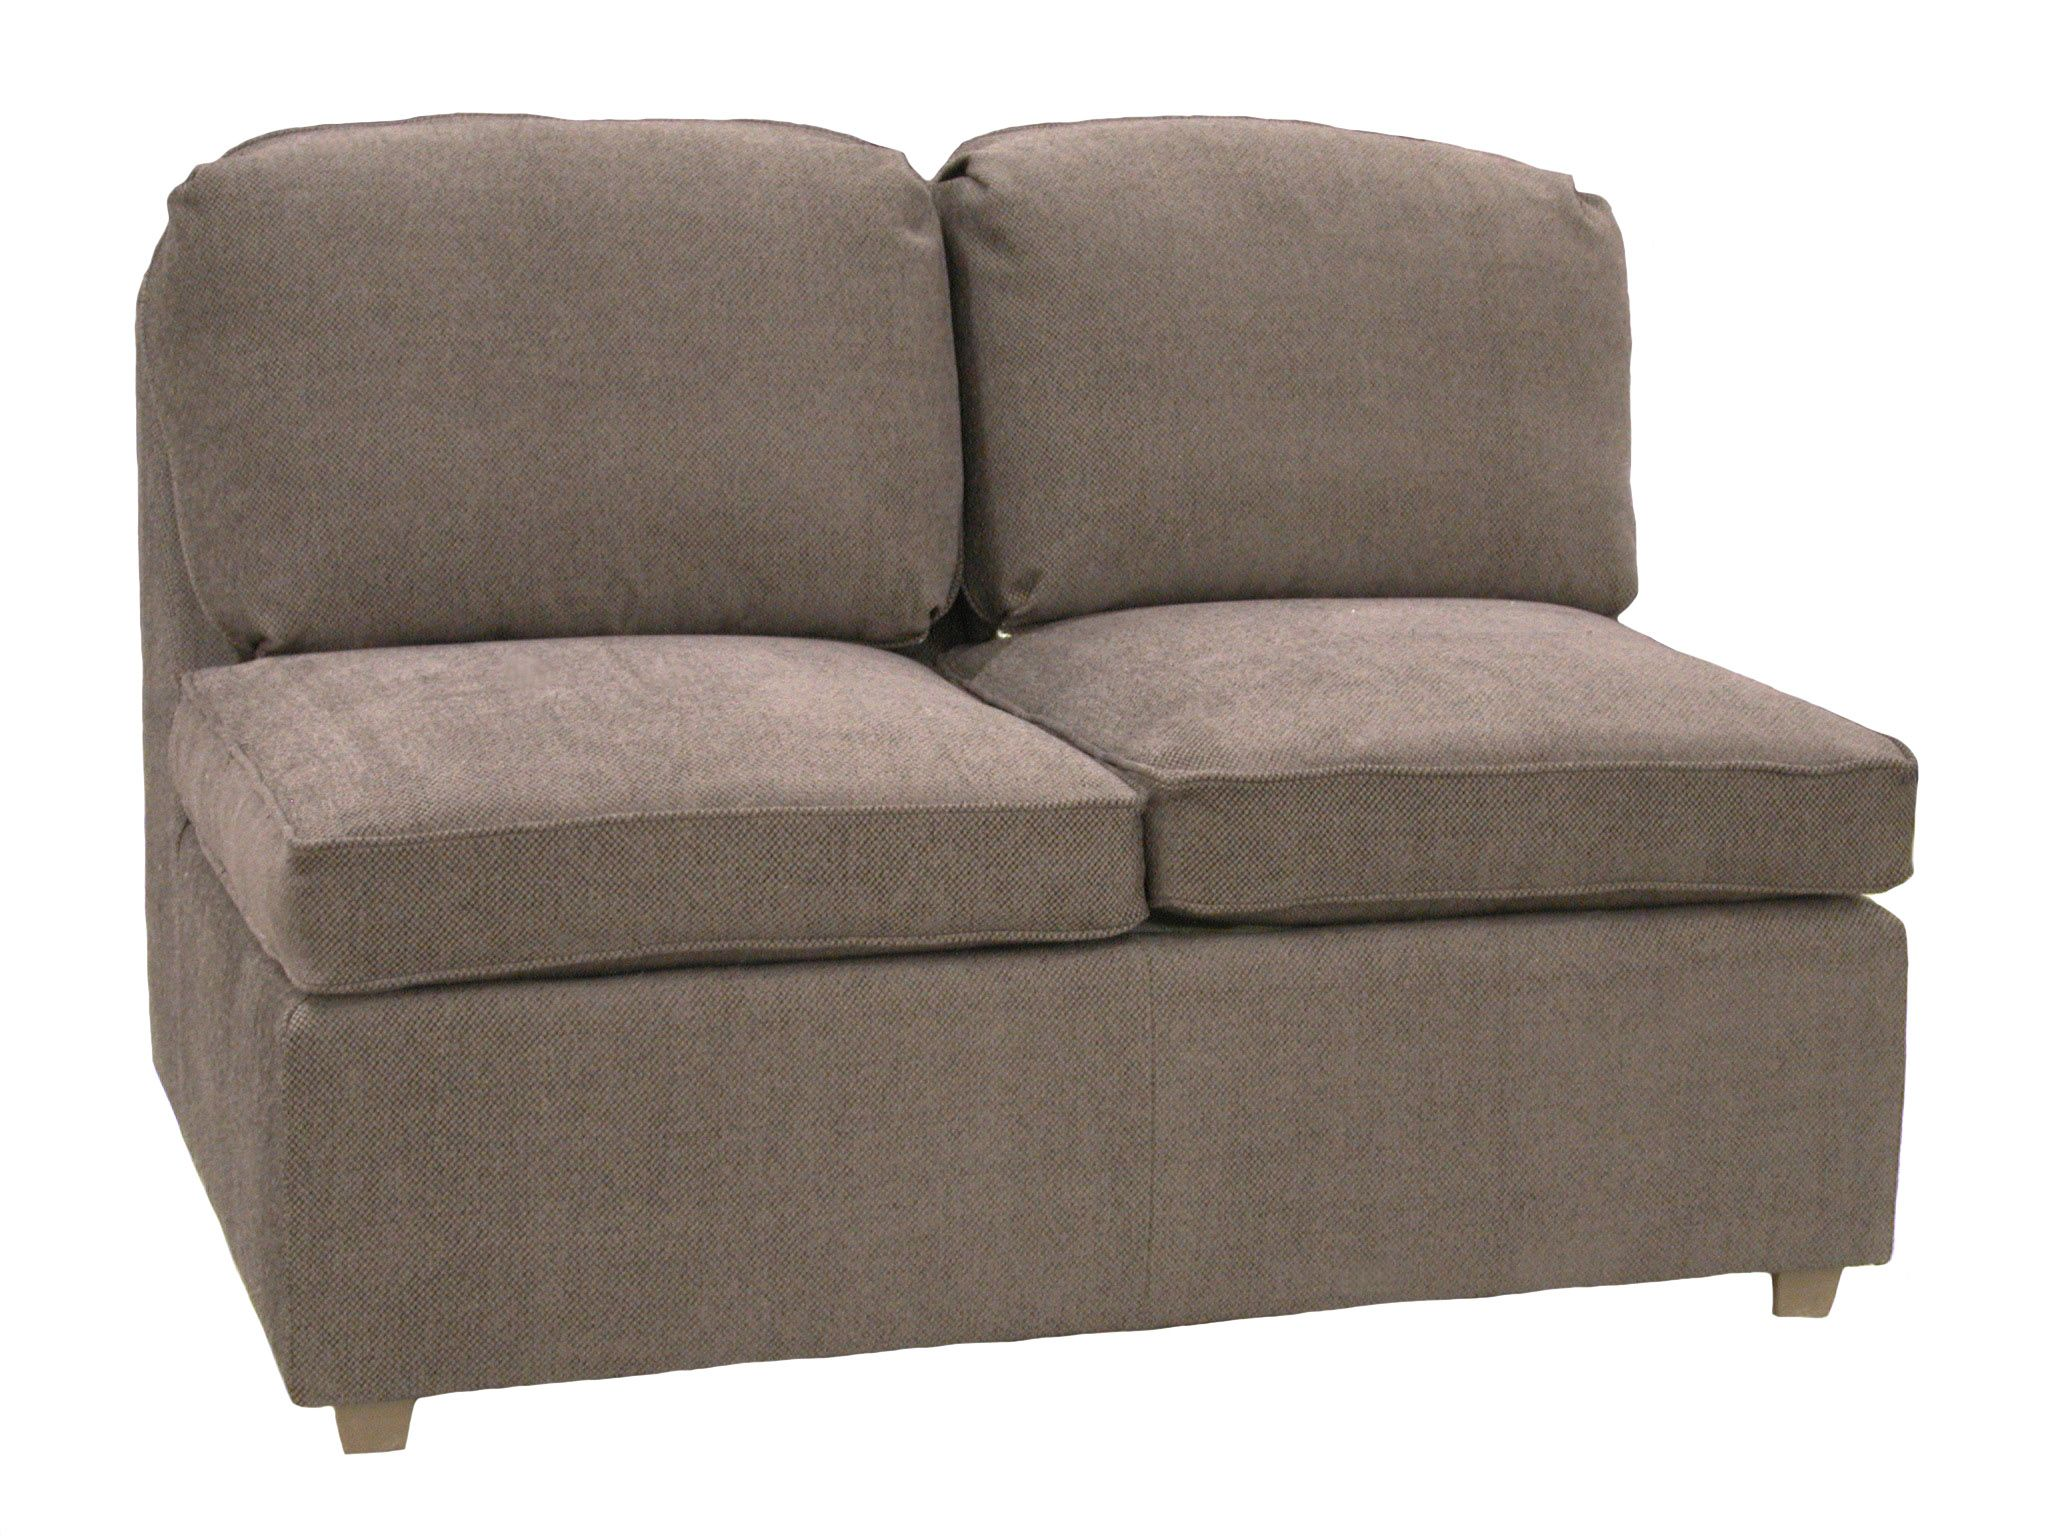 Outstanding Roth Sectional Sofa Components Nc Usa Furniture Carolina Machost Co Dining Chair Design Ideas Machostcouk